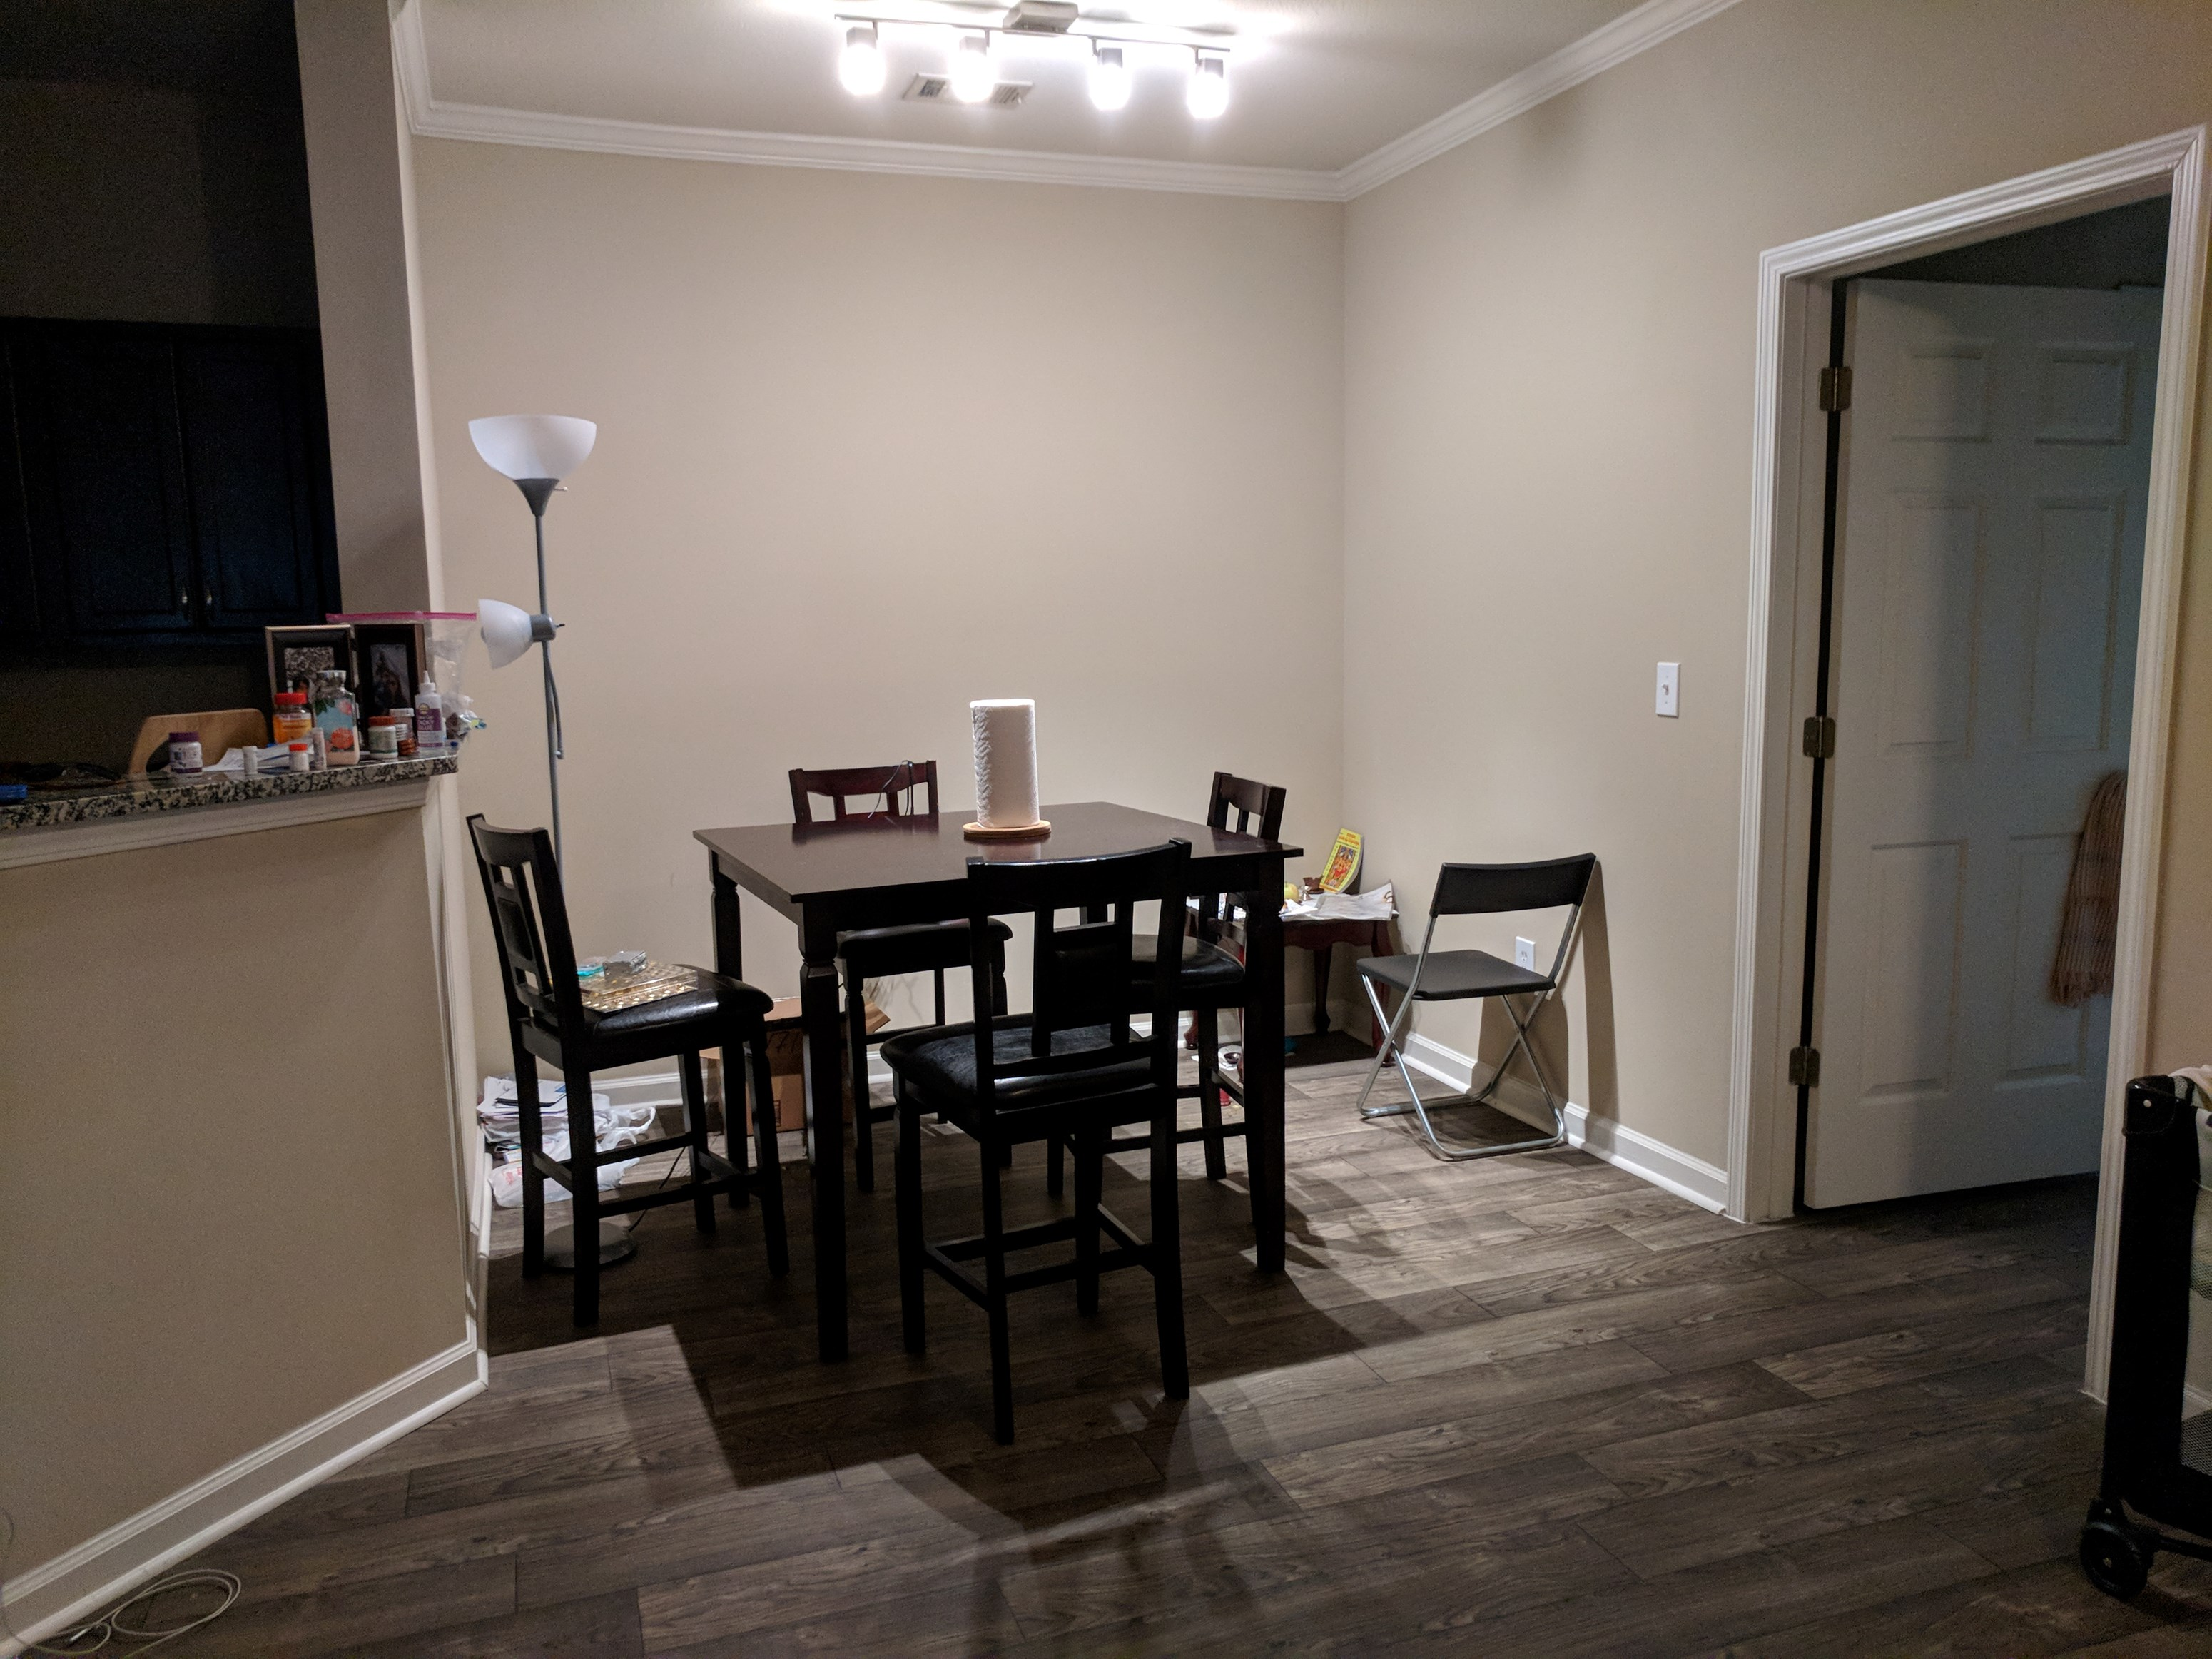 Lease Transfer With Free Furniture